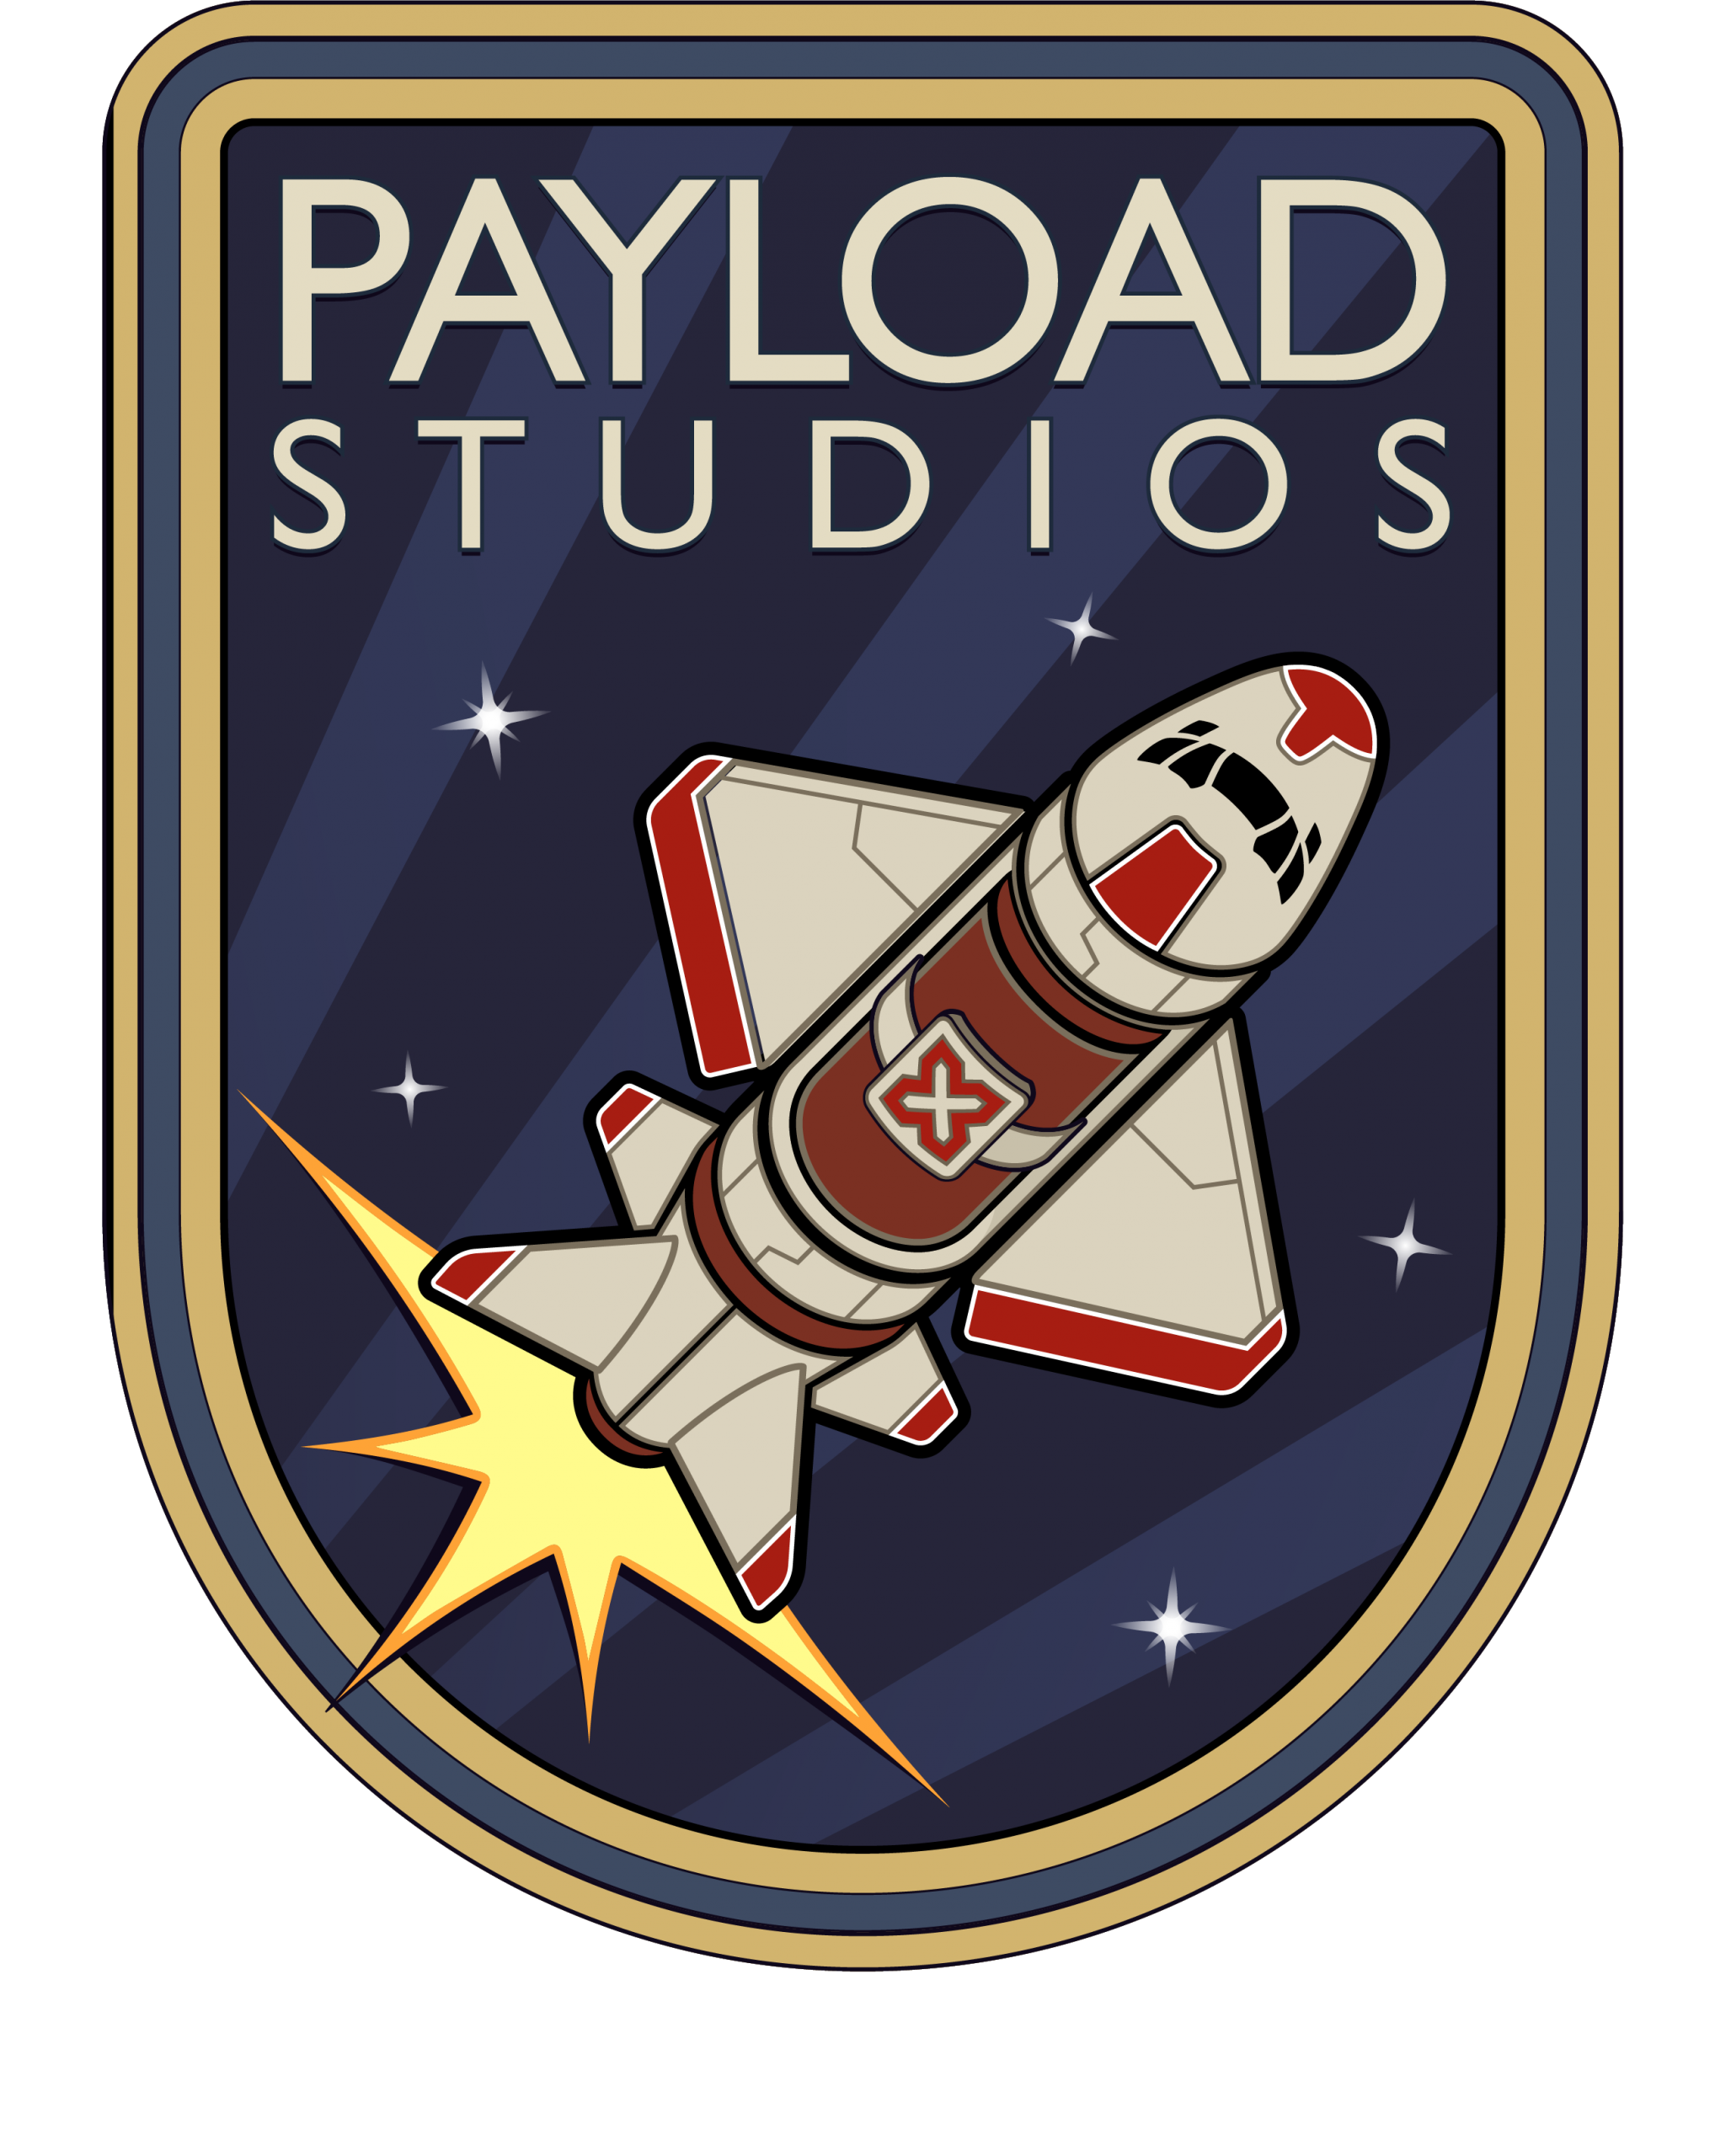 Payload Studios